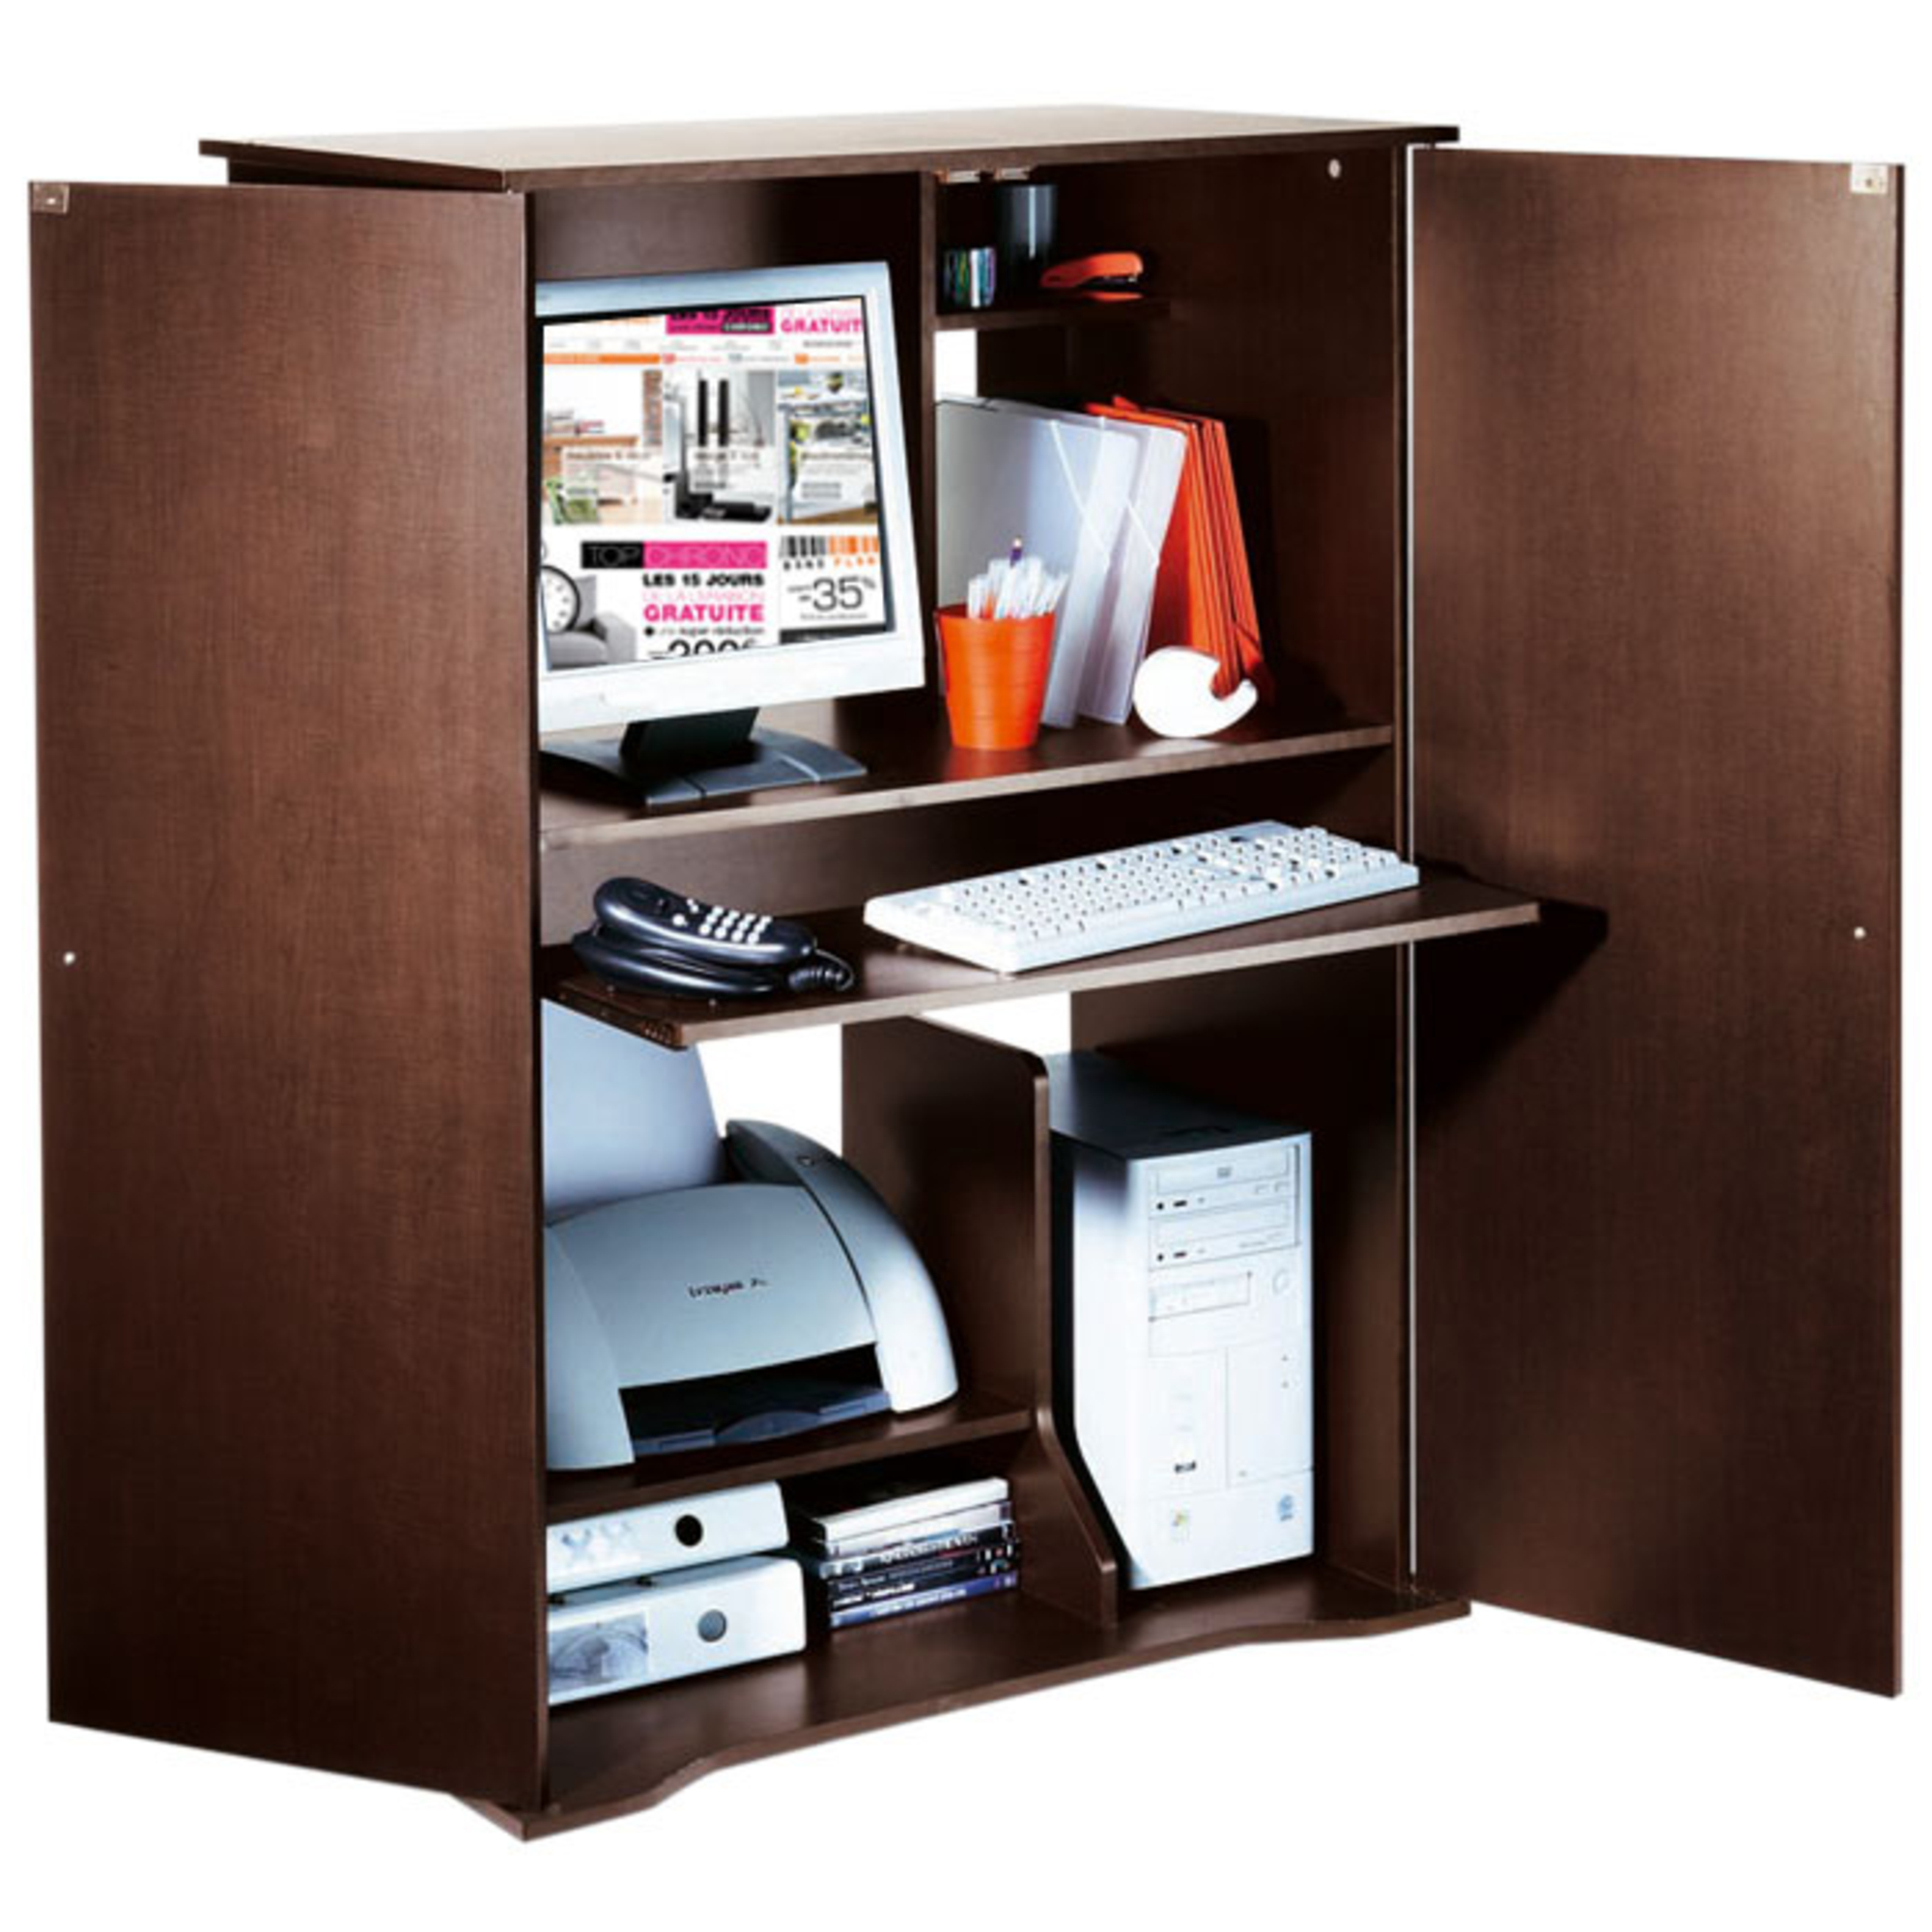 Armoire de bureau en anglais for Meuble anglais traduction